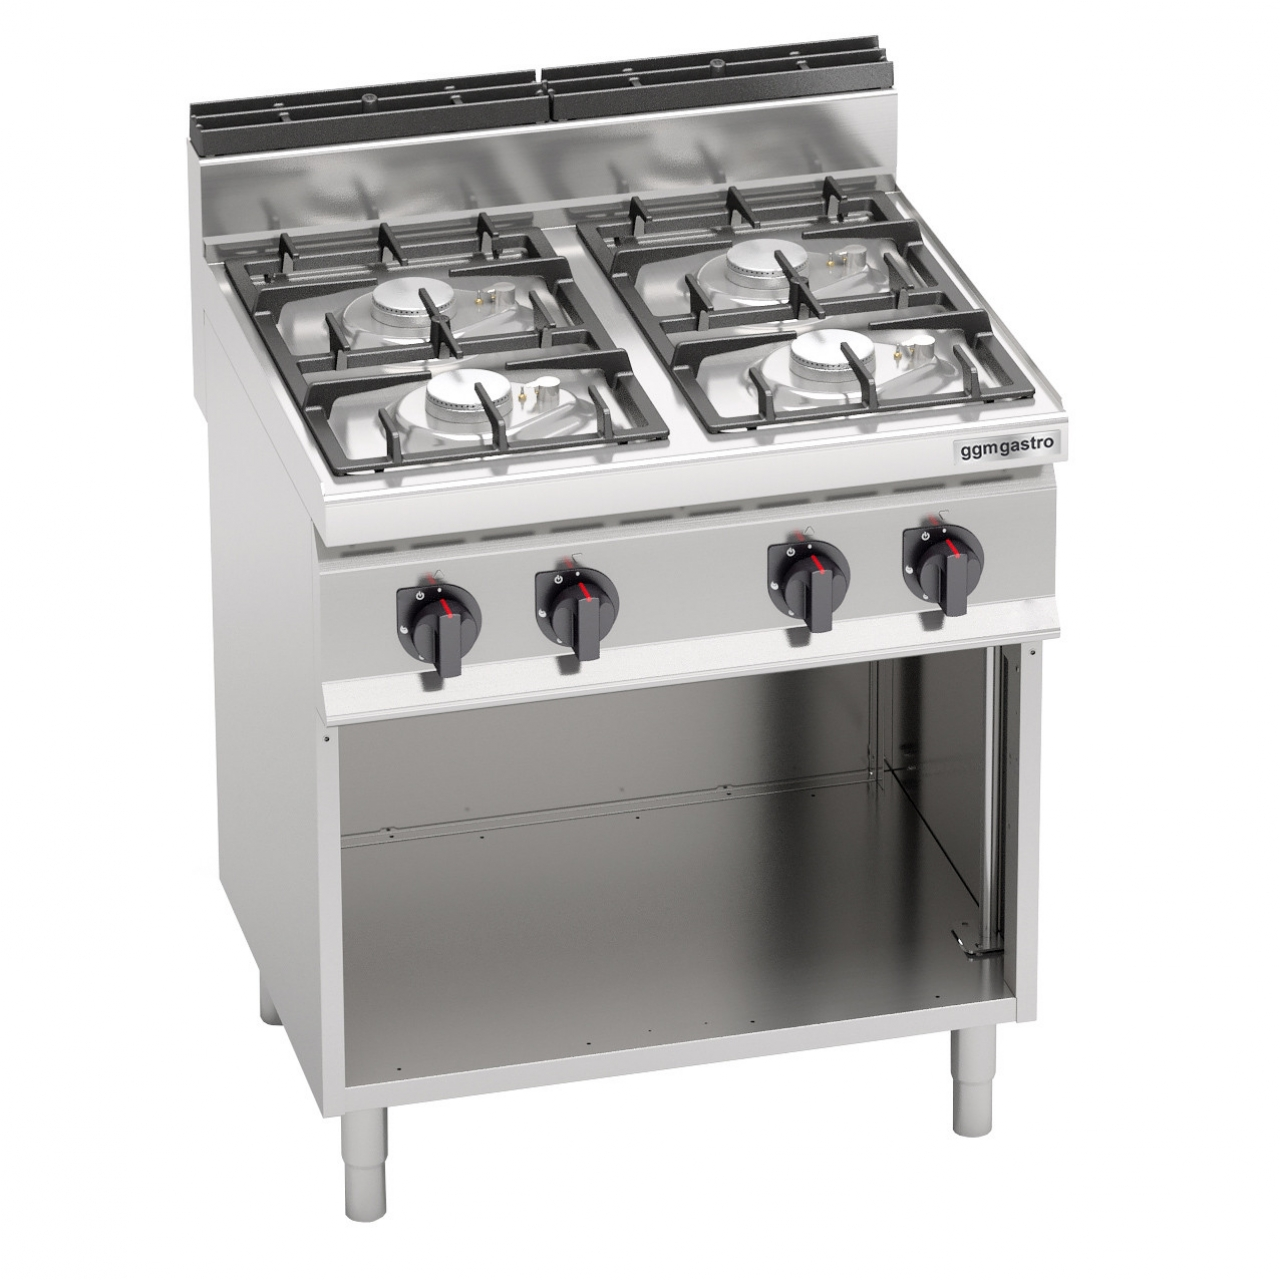 Gas stove 4 burners 21.5 kW electronic ignition